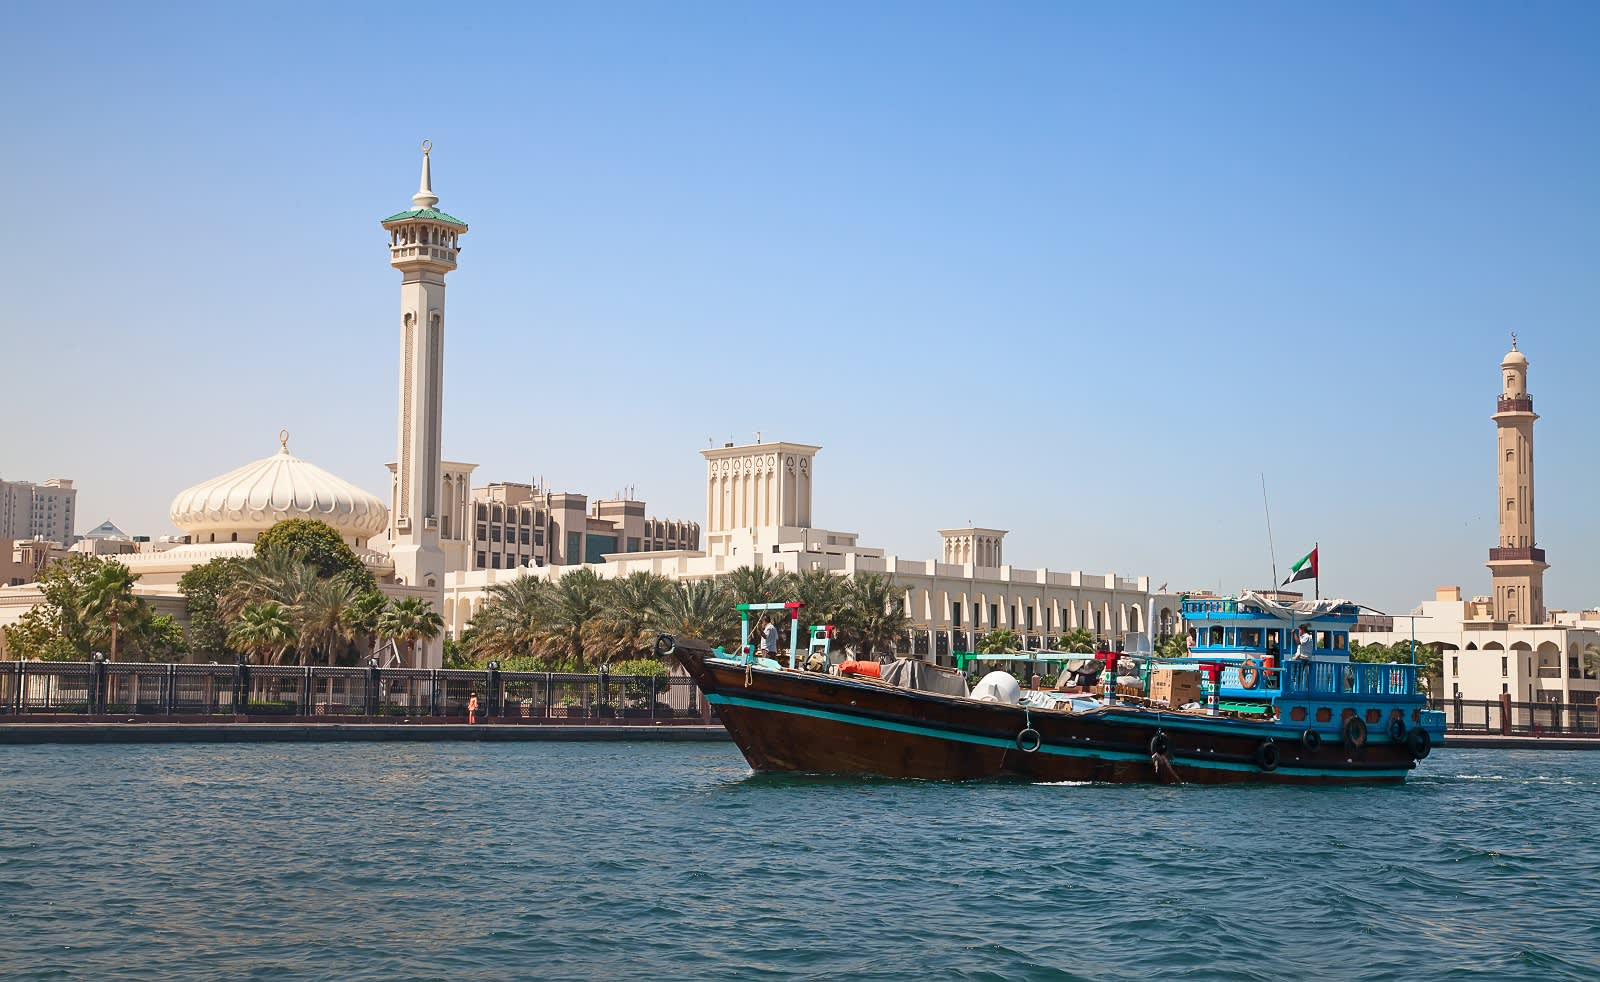 Trraditional boat on the Dubai creek